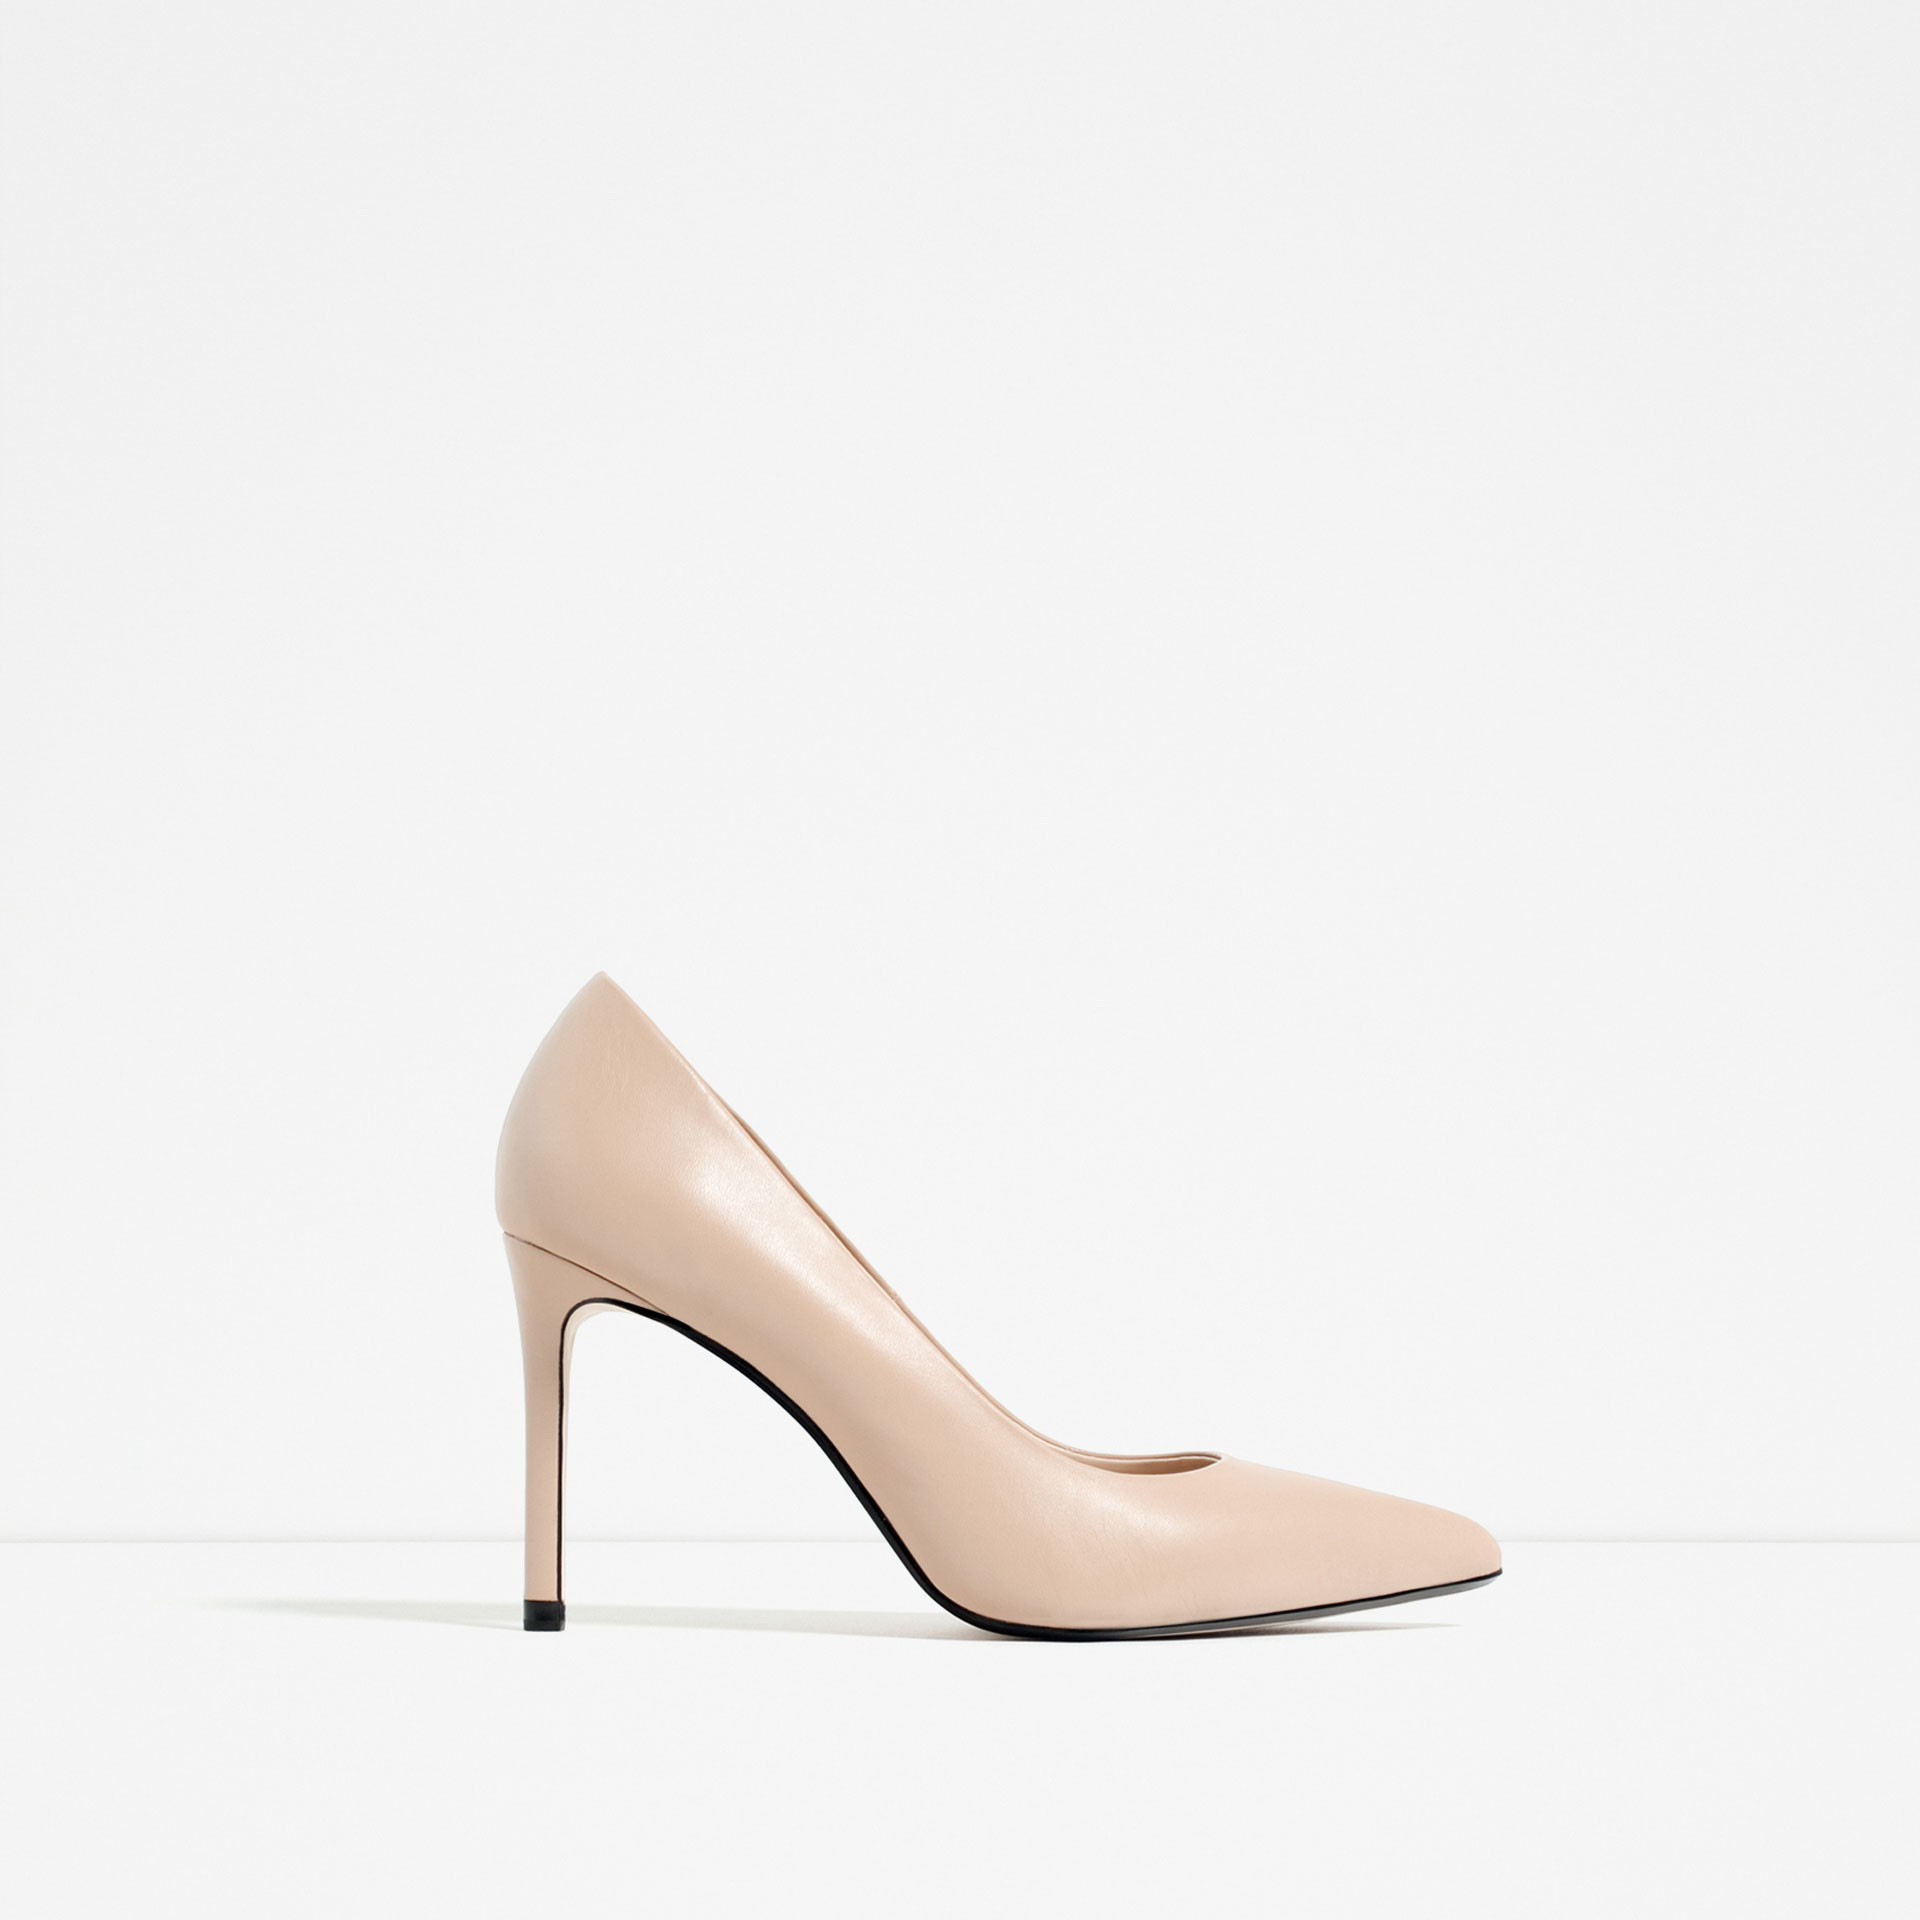 Zara Leather High Heel Shoes in Natural | Lyst